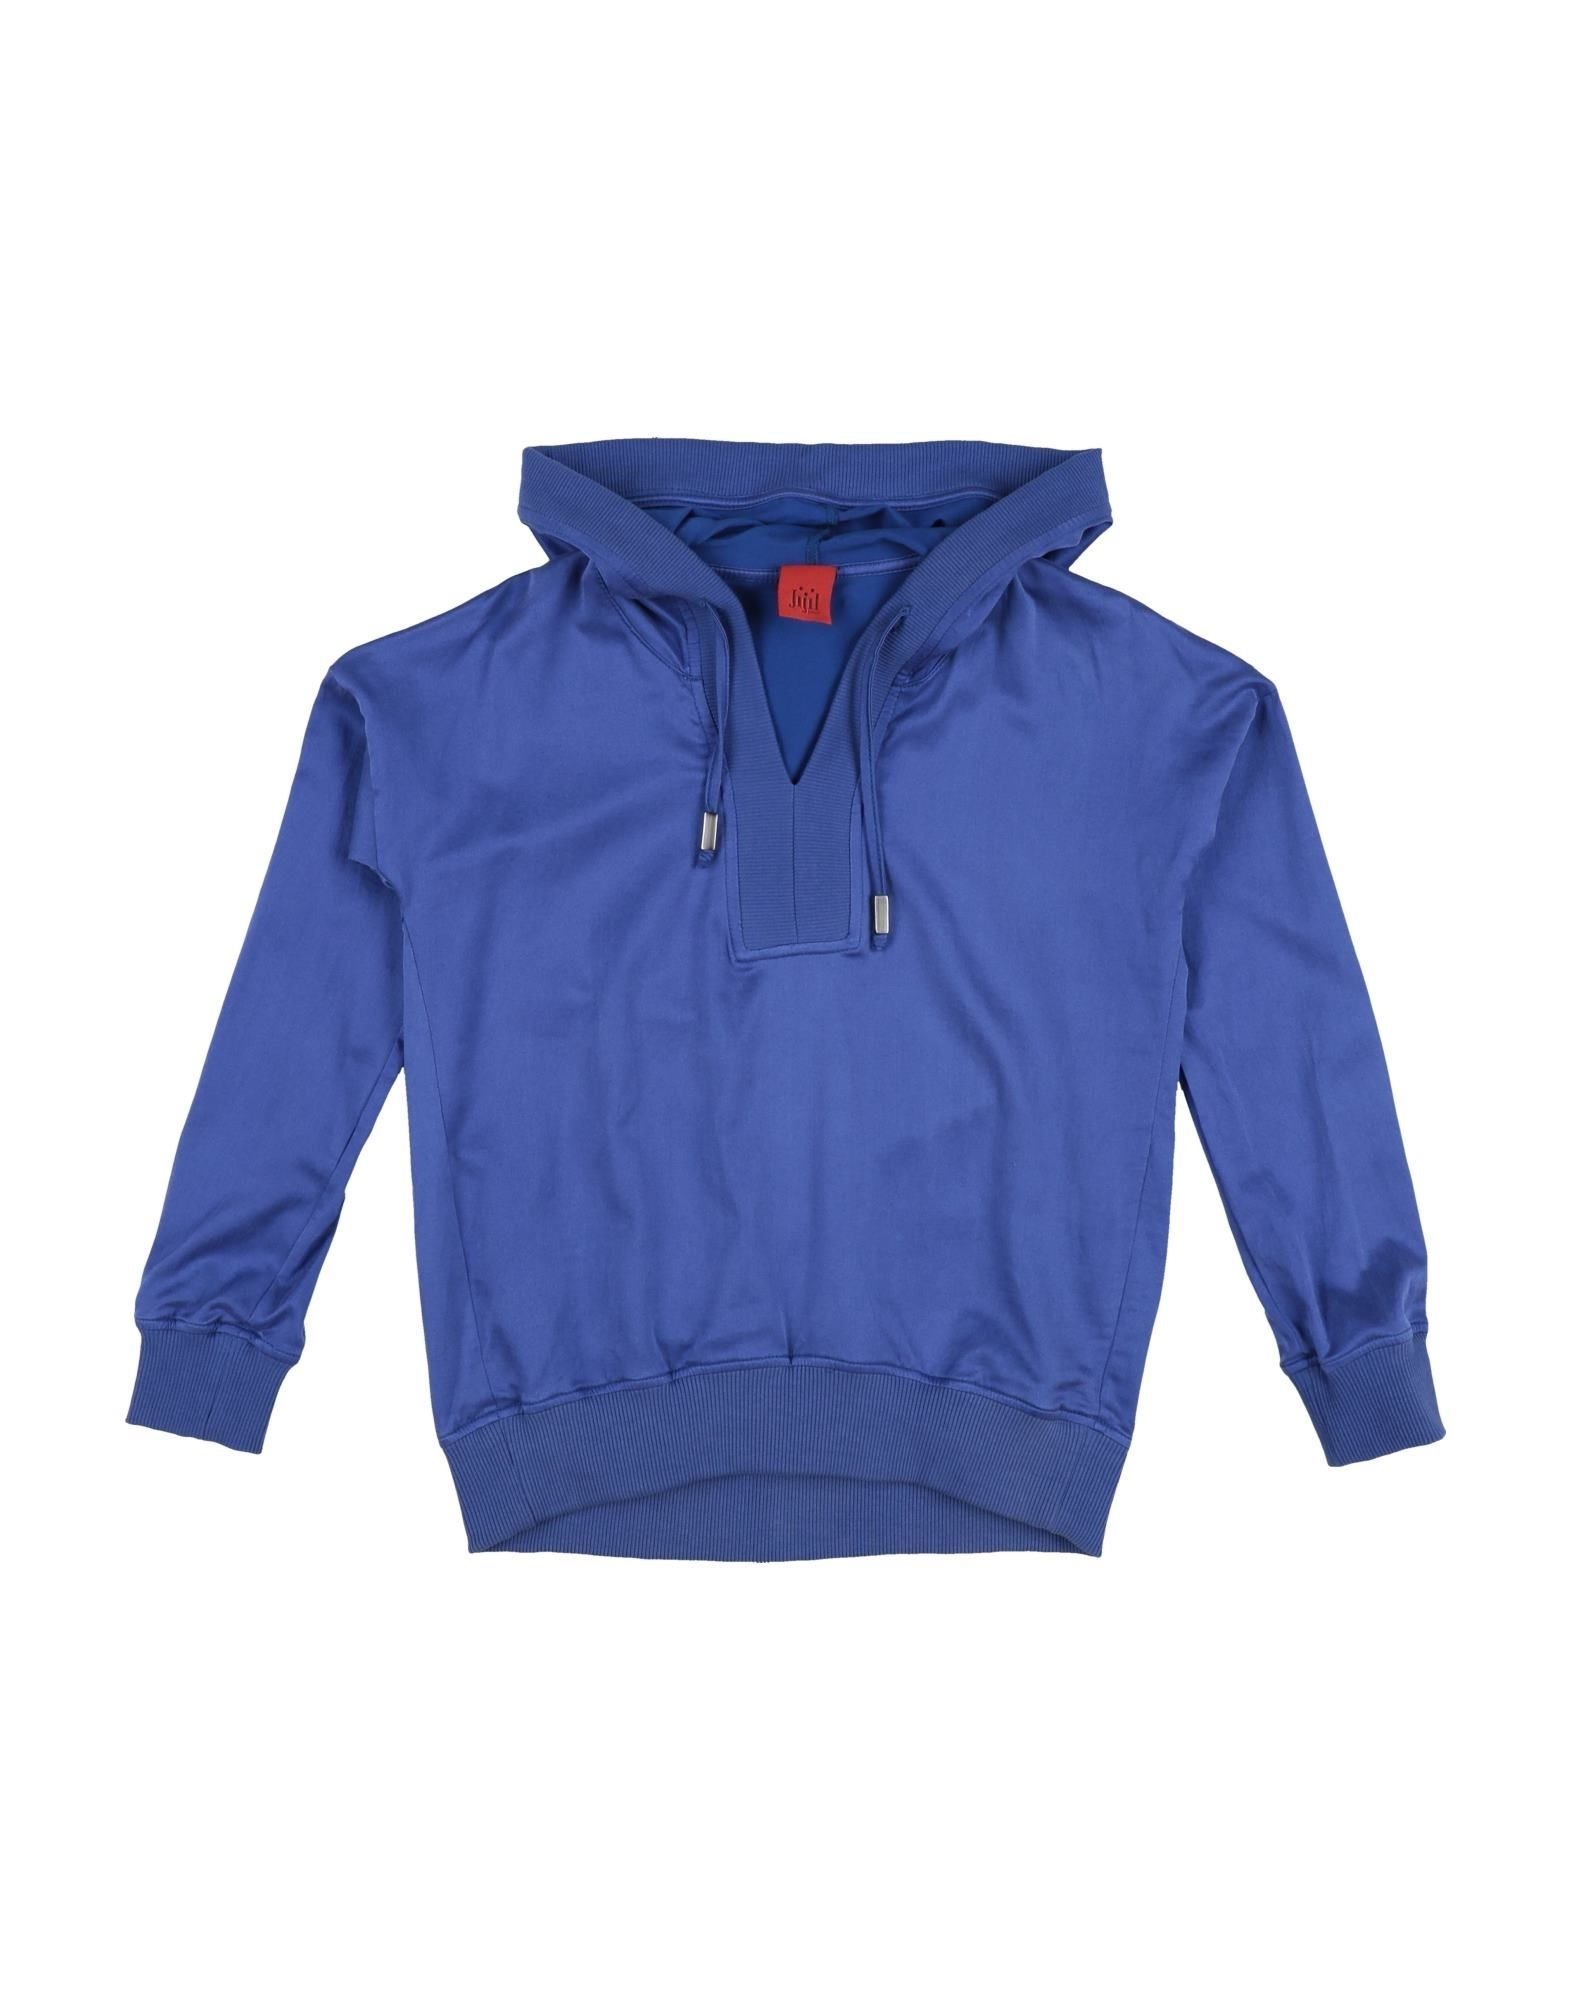 Jijil Jolie Kids' Sweatshirts In Blue